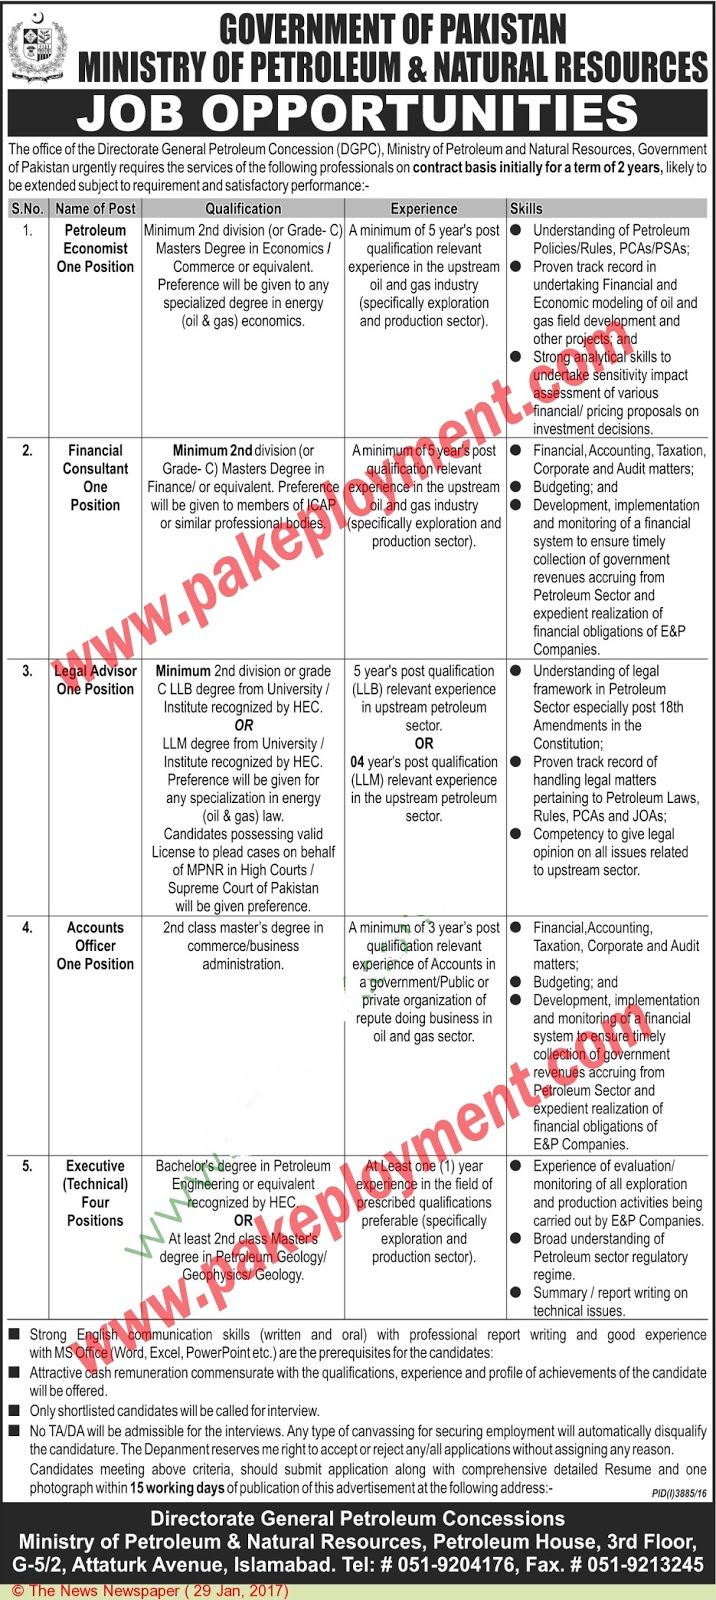 Ministry of Petroleum & Natural Resources Government of Pakistan Jobs 2017